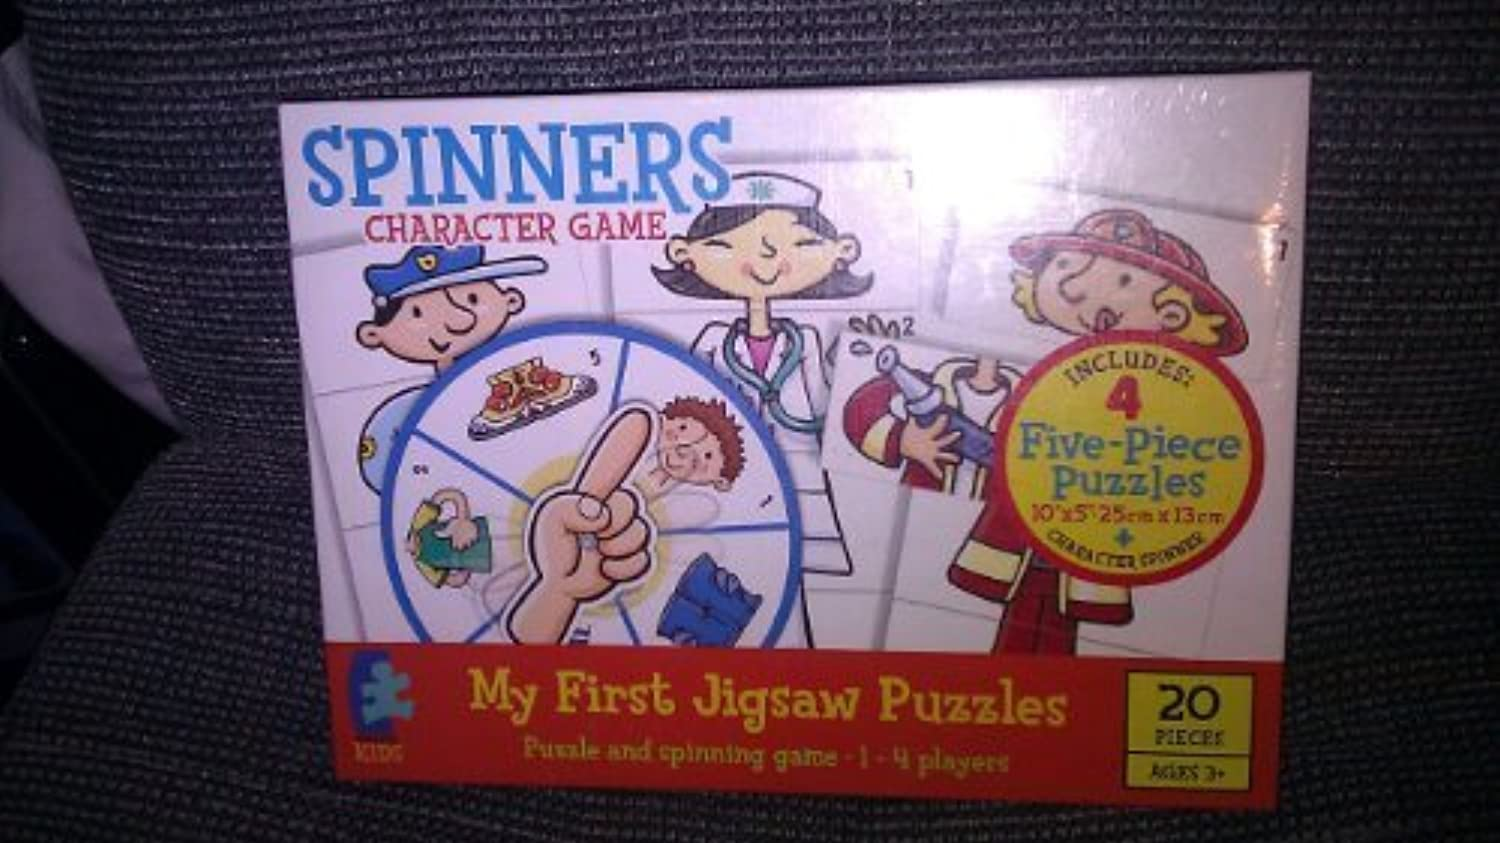 Spinners Character Game by Ceaco Kids